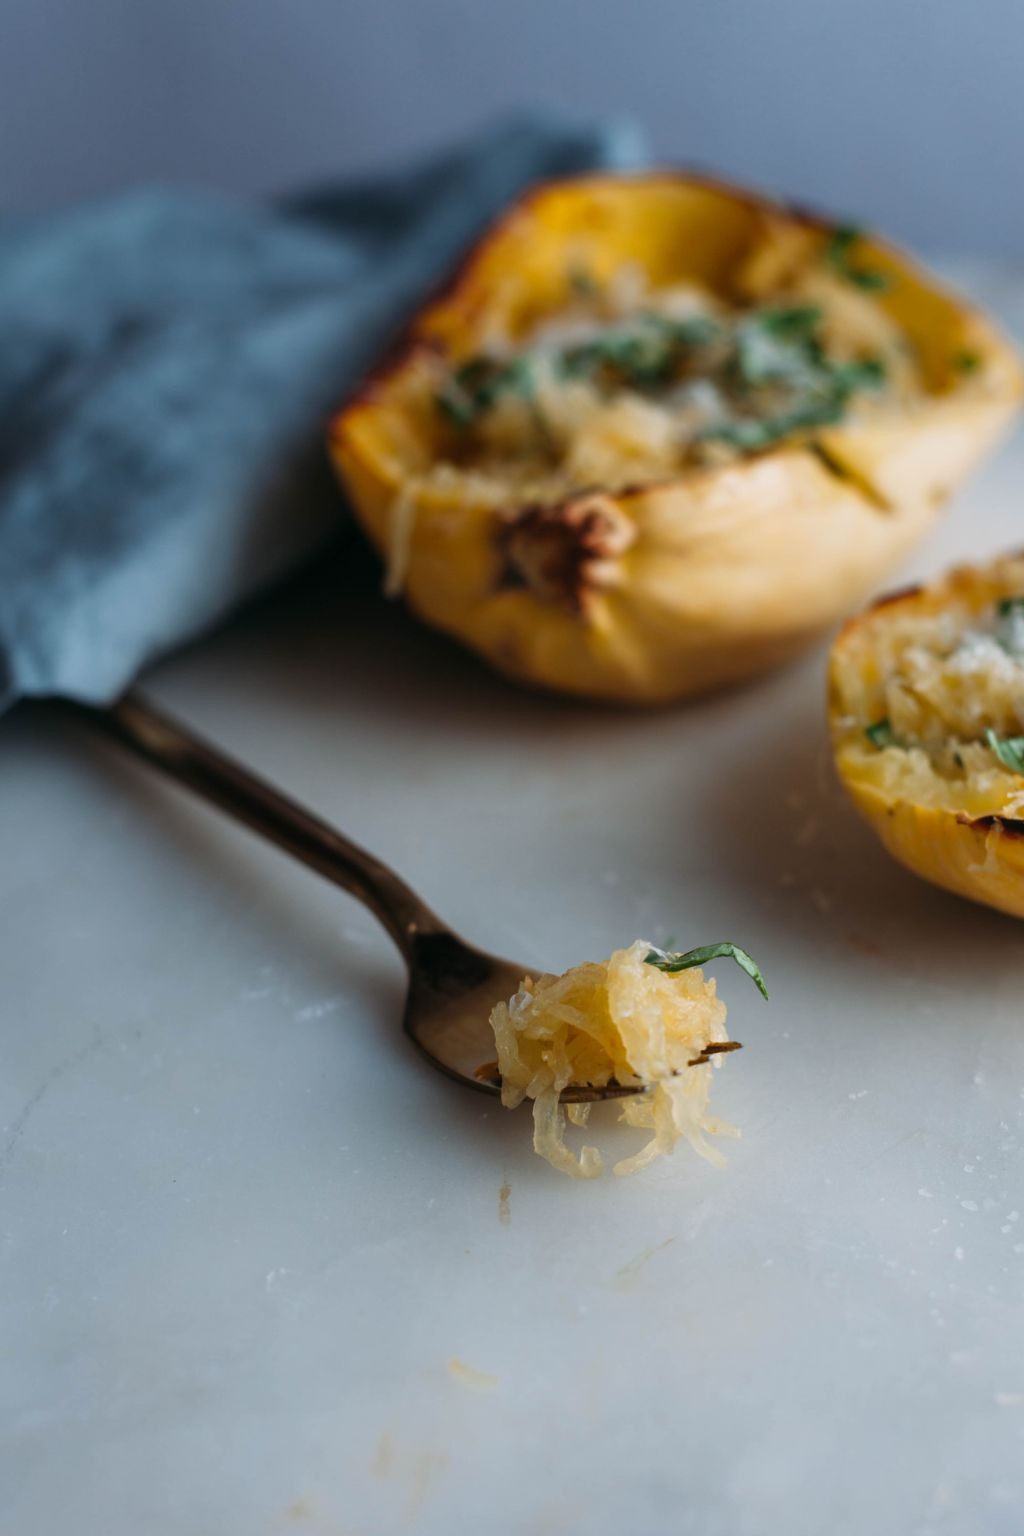 Spaghetti Squash with Brown Butter and Lemon - Tastemaker Blog